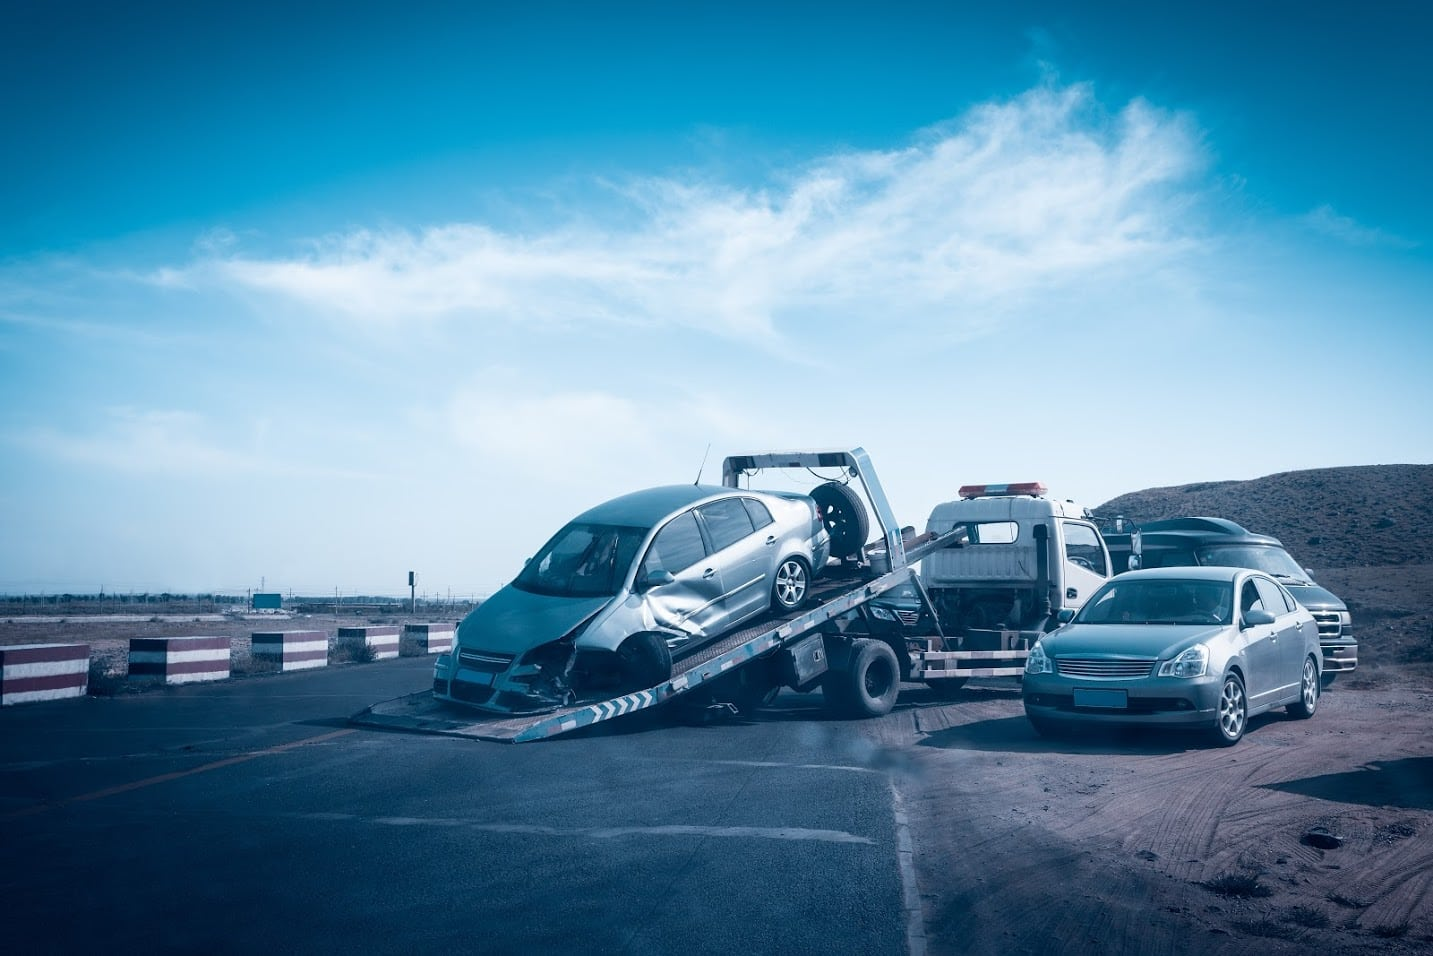 Tow Truck Towing Away A Damaged Vehicle Stock Photo